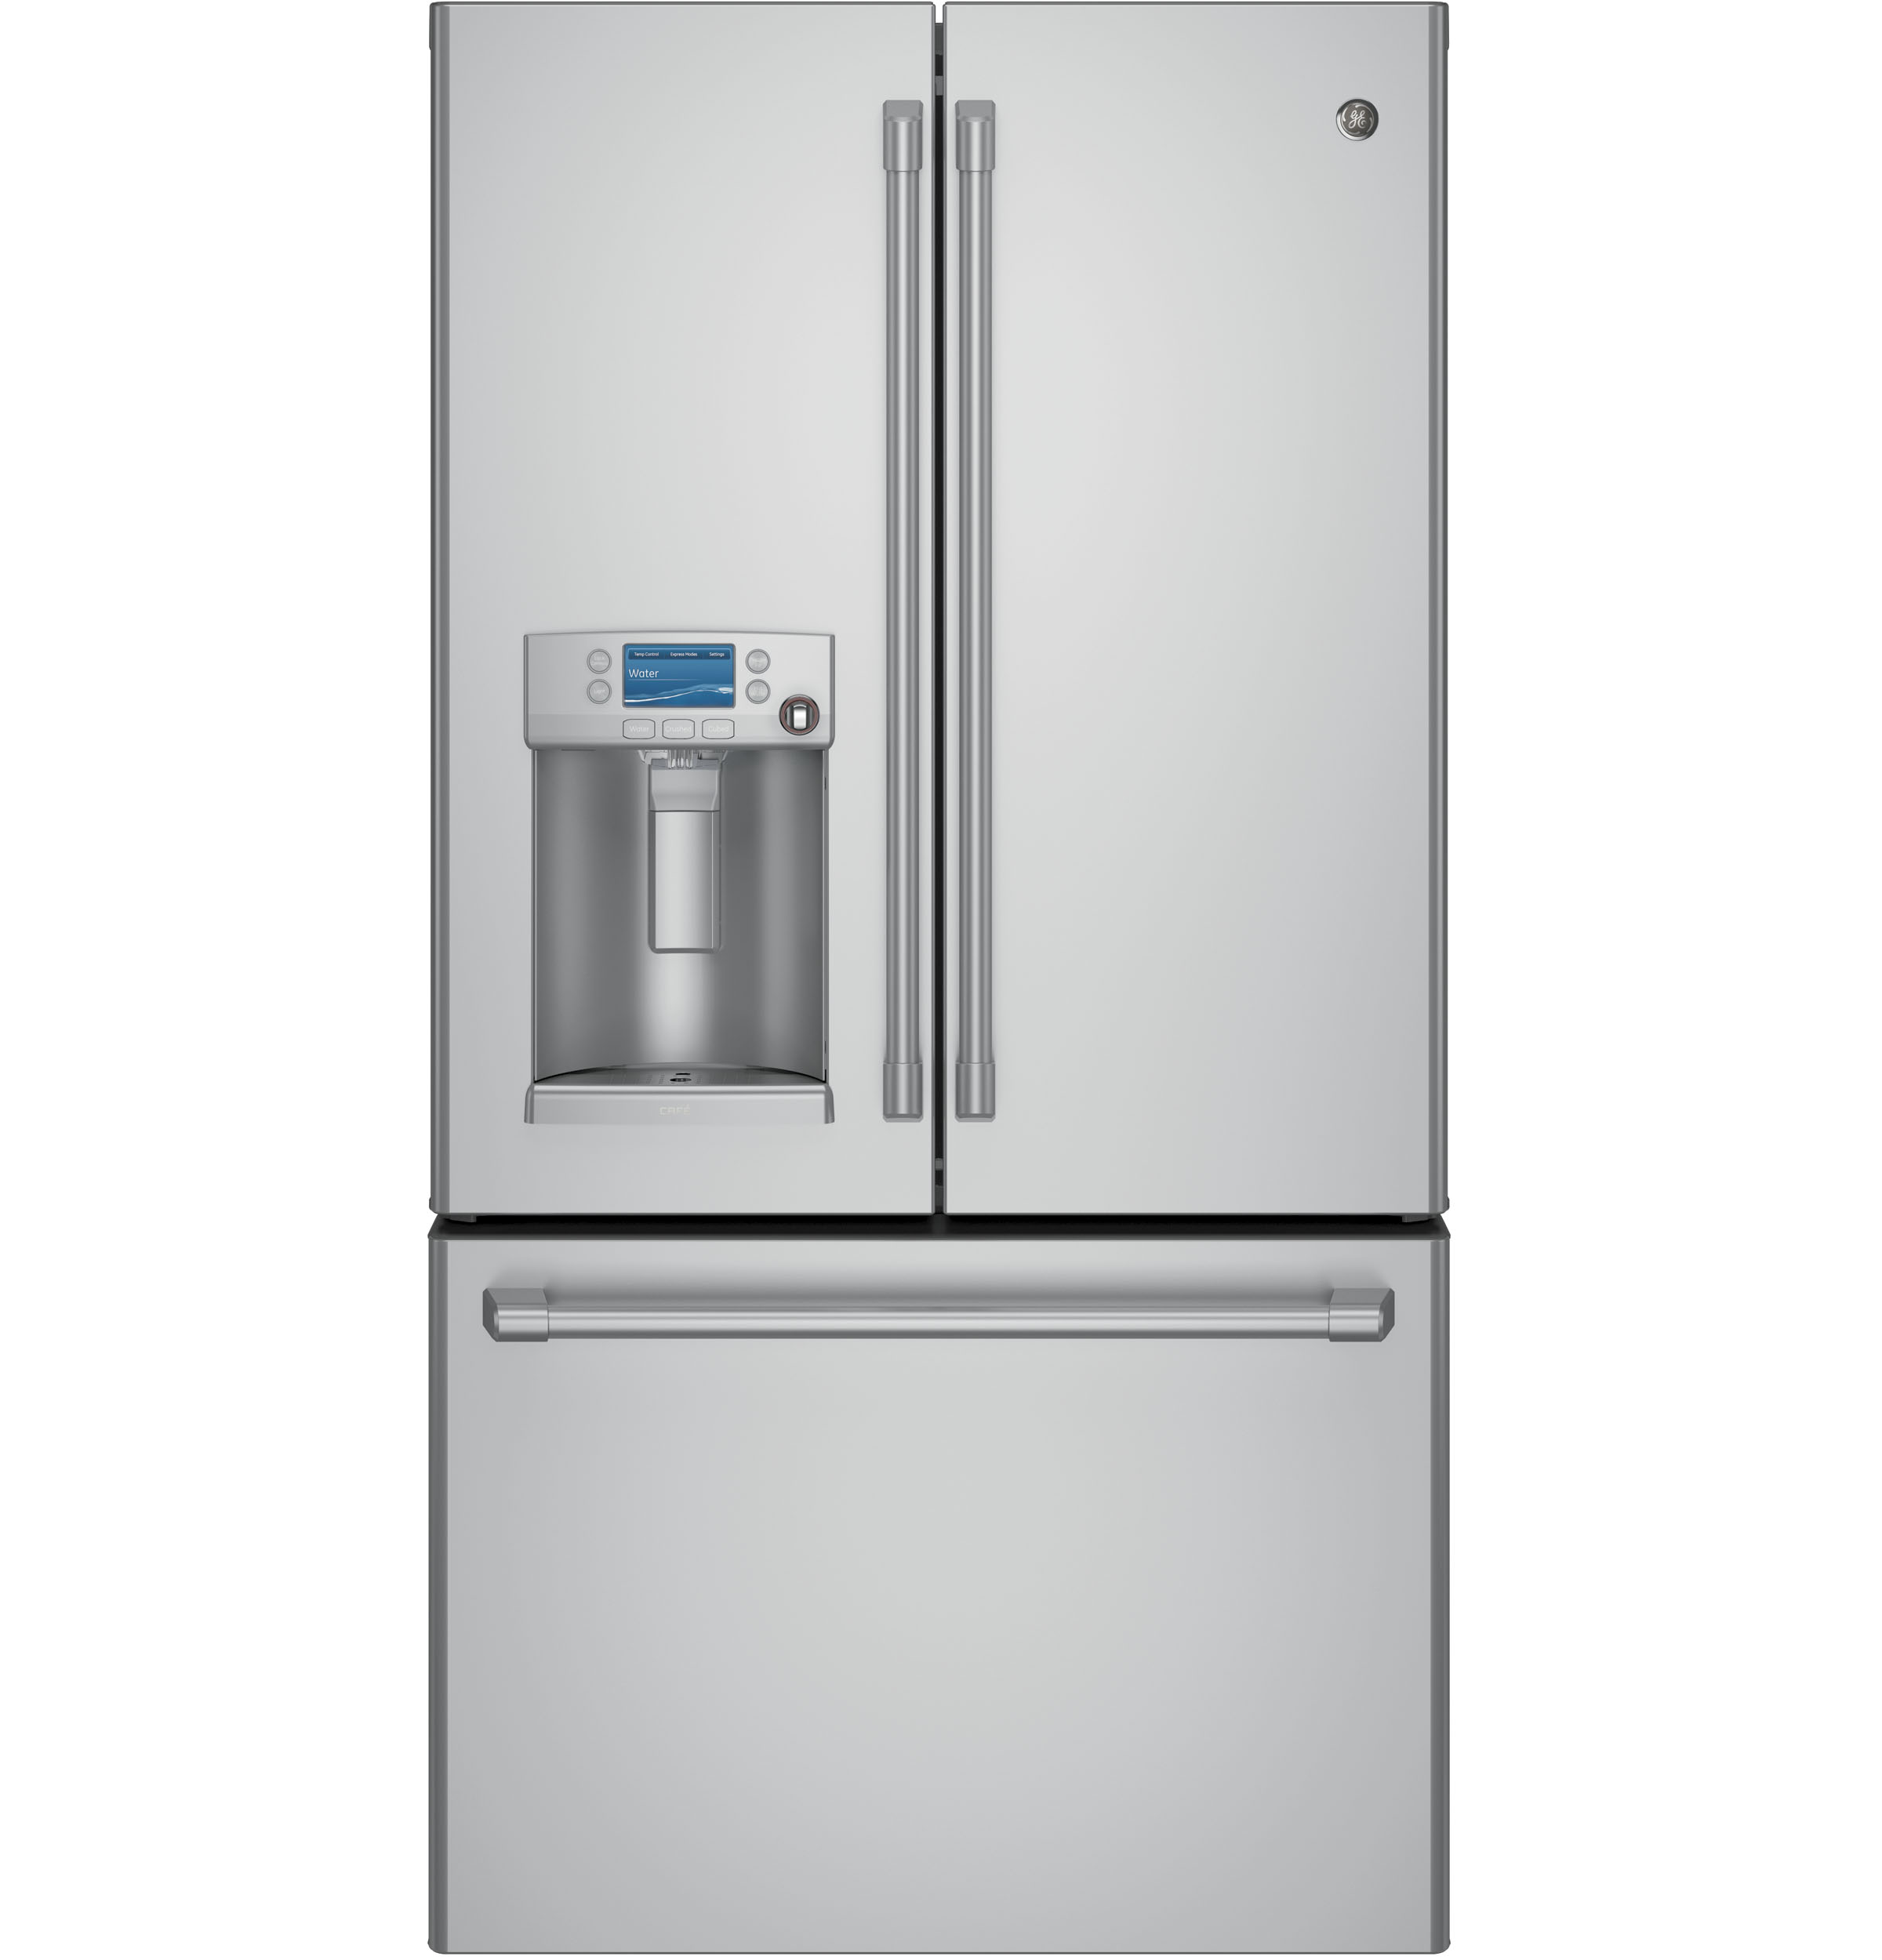 GE Café™ Series ENERGY STAR® 22.2 Cu. Ft. Counter-Depth French-Door Refrigerator with Hot Water Dispenser